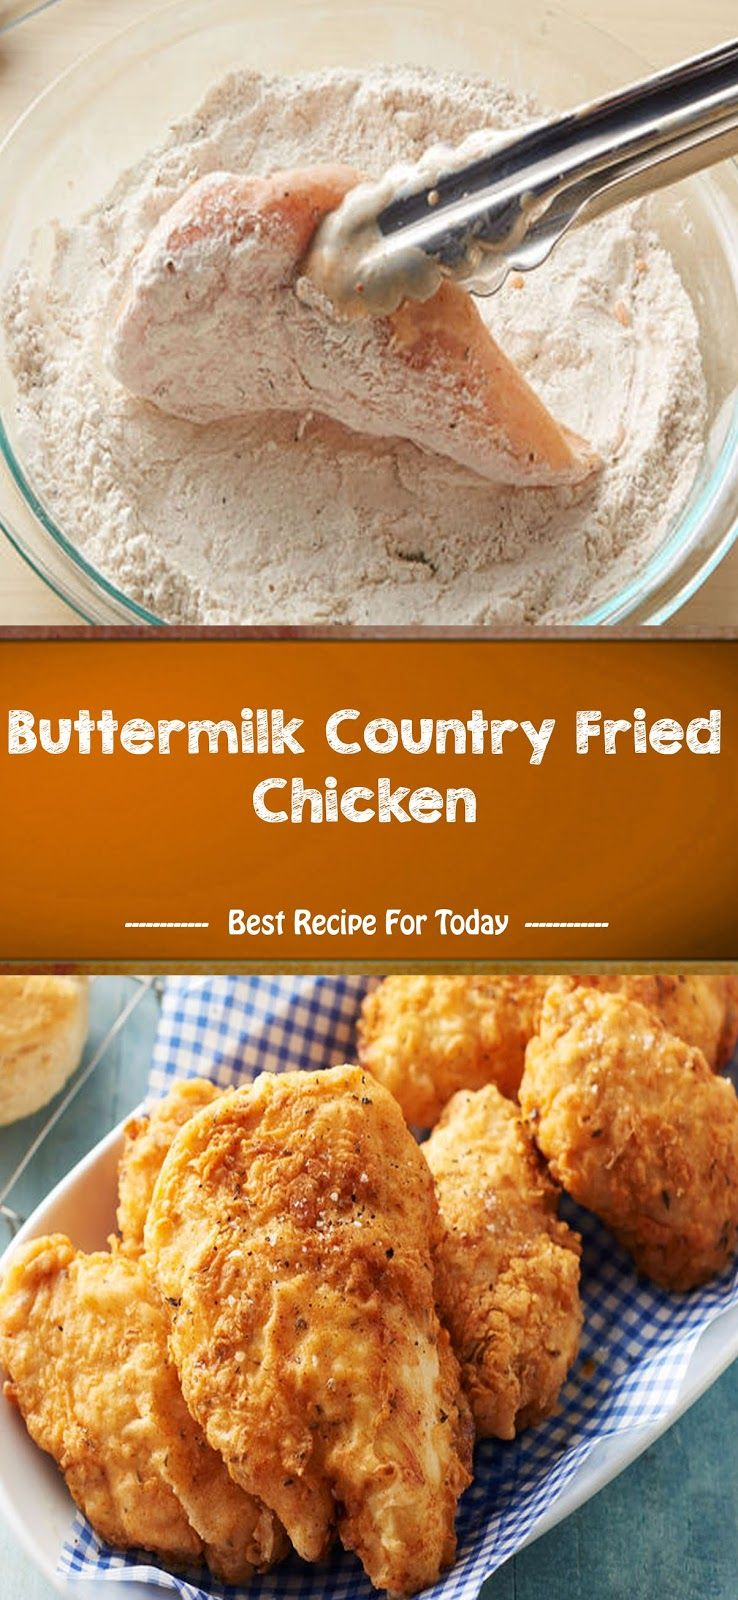 Buttermilk Country Fried Chicken In 2020 Country Fried Chicken Fried Chicken Recipes Recipes